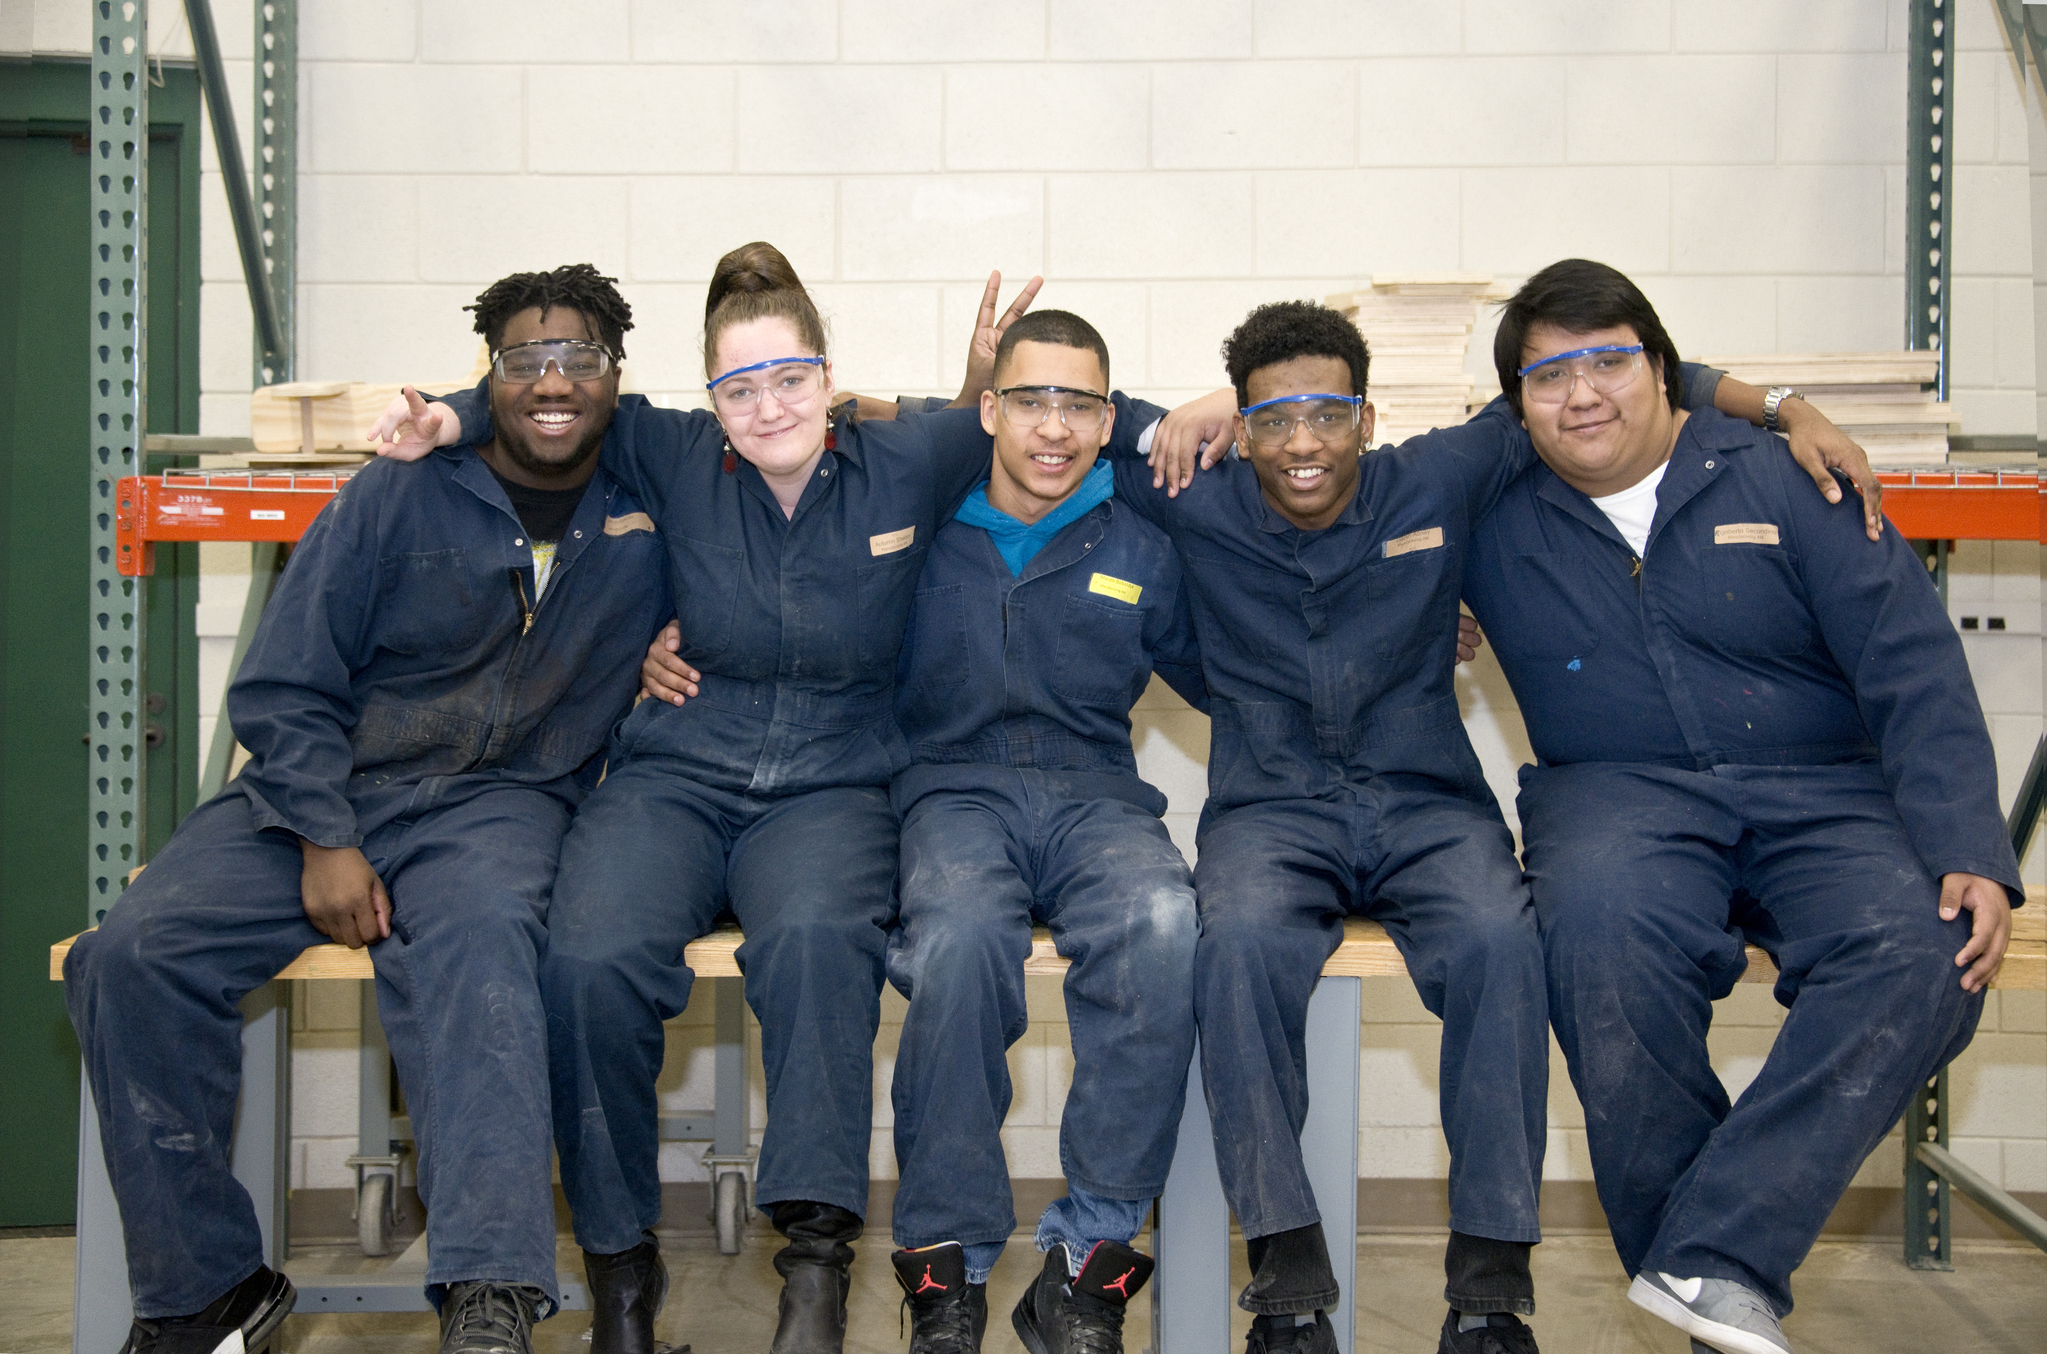 Automotive students sitting on bench